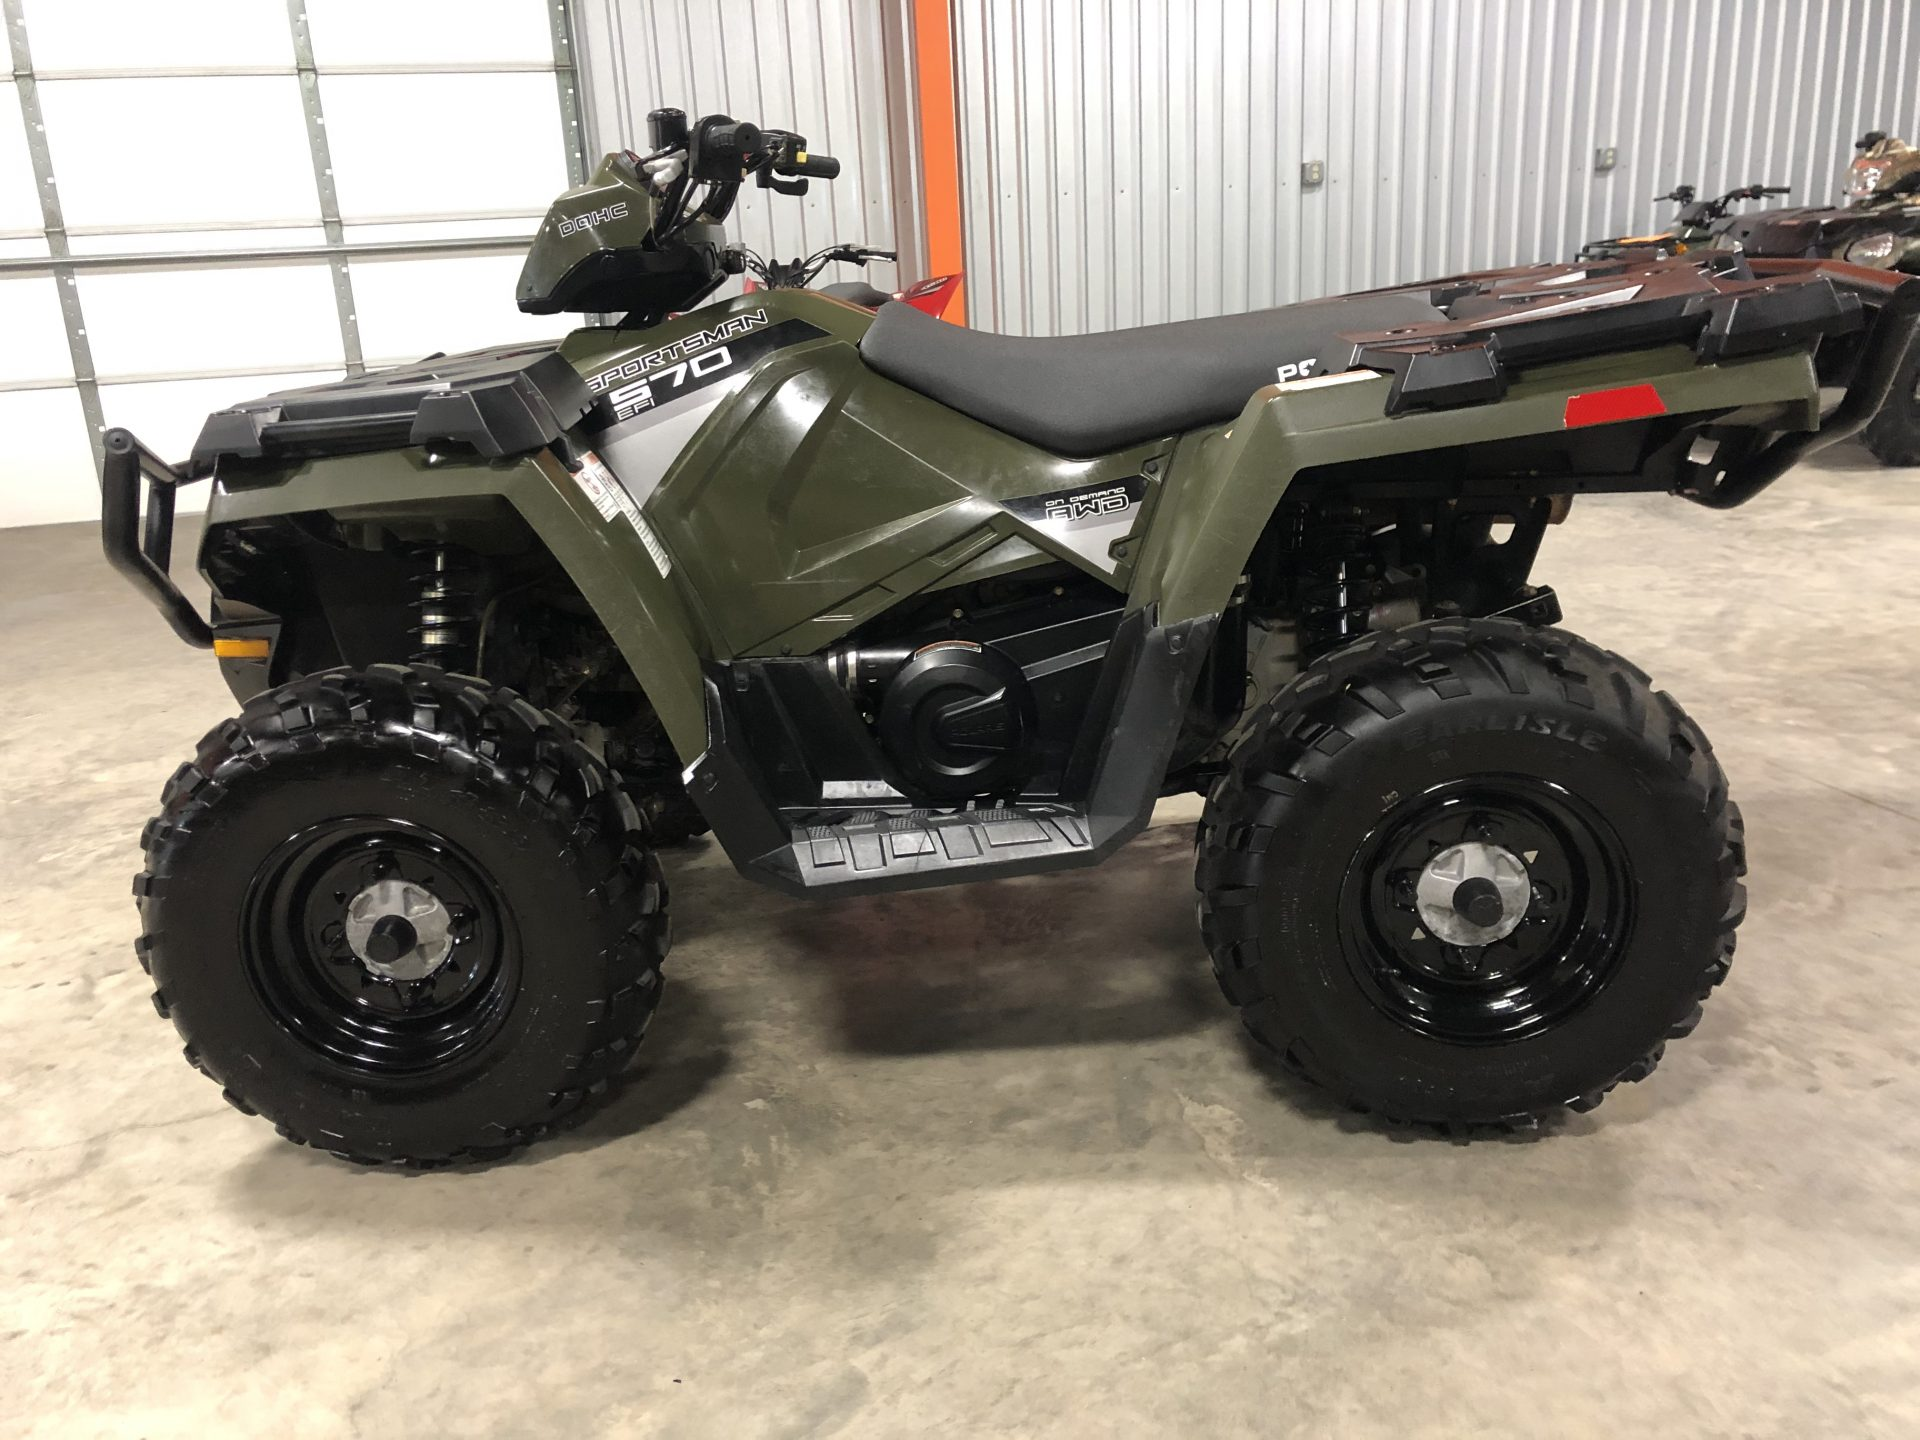 2014 Polaris Sportsman 570 Image